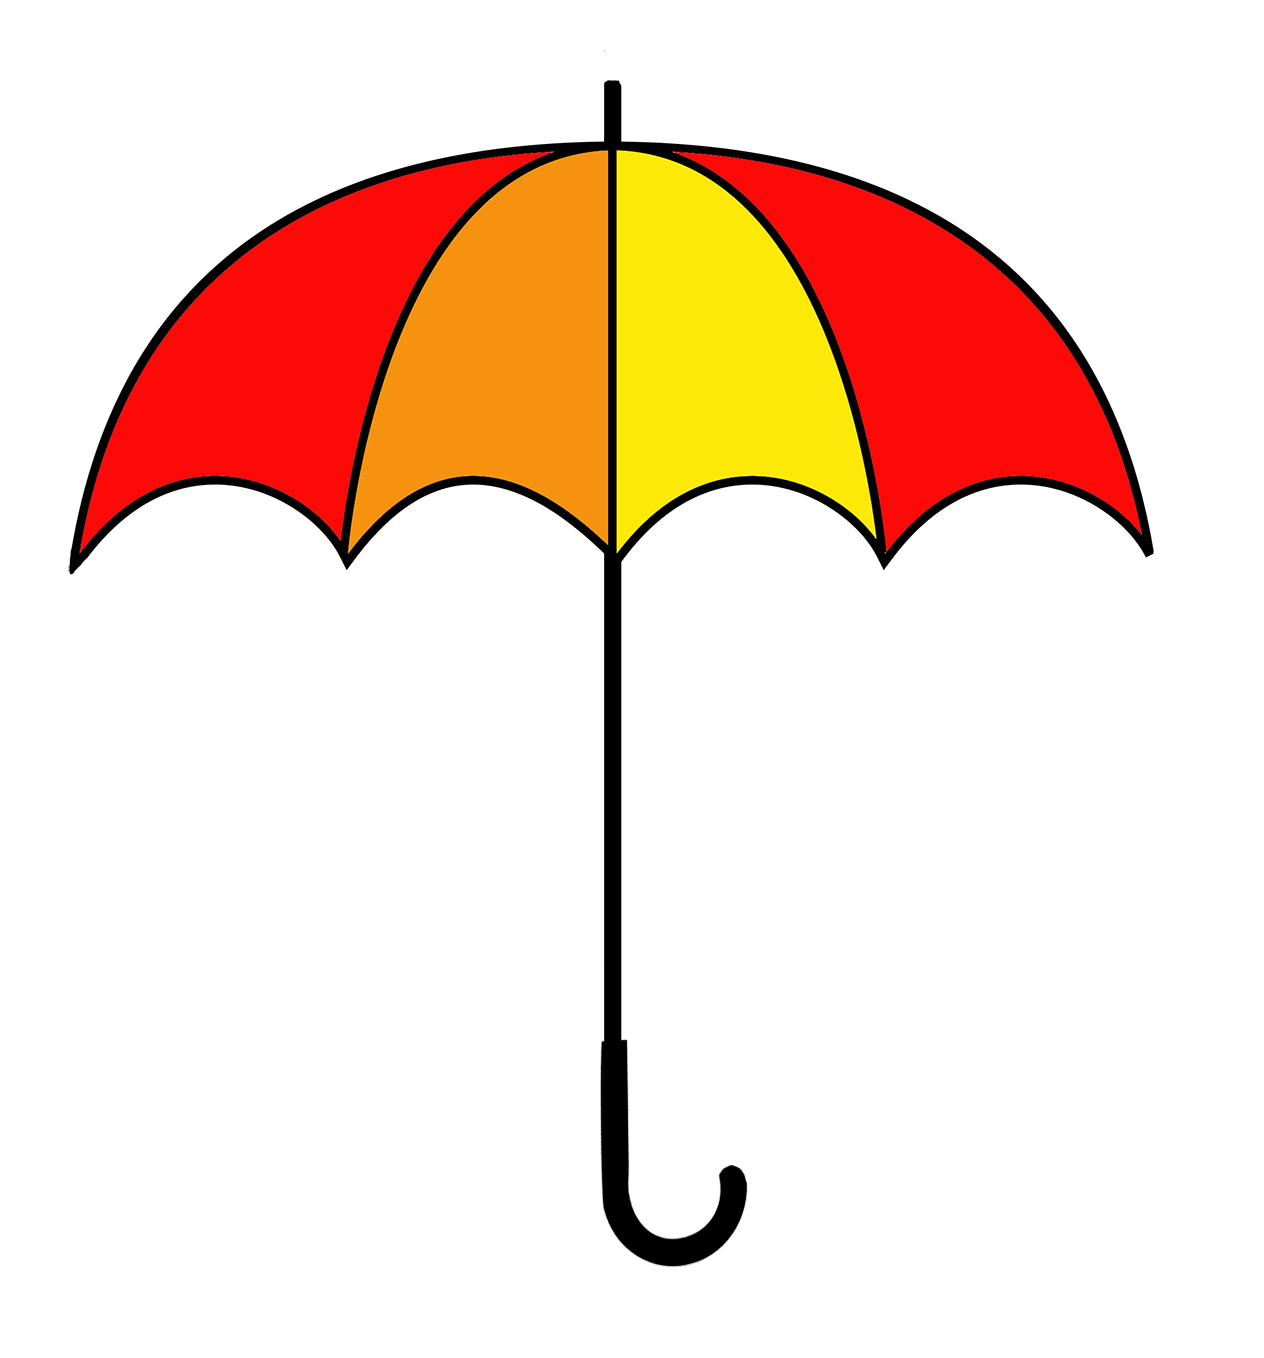 red and yellow umbrella